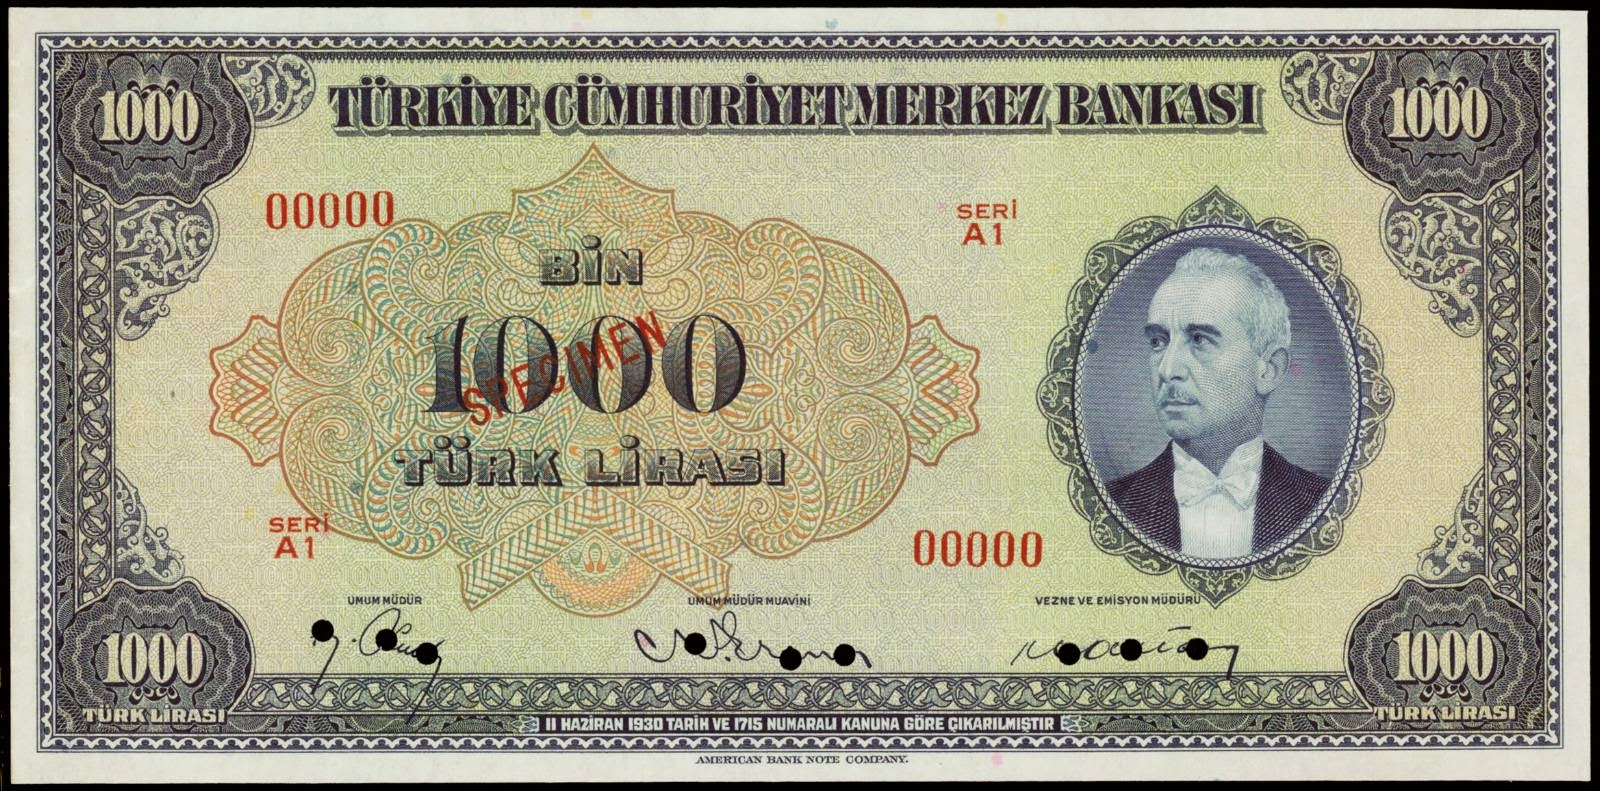 Turkey banknotes 1000 Turkish Lira note 1930 1946 İsmet İnönü